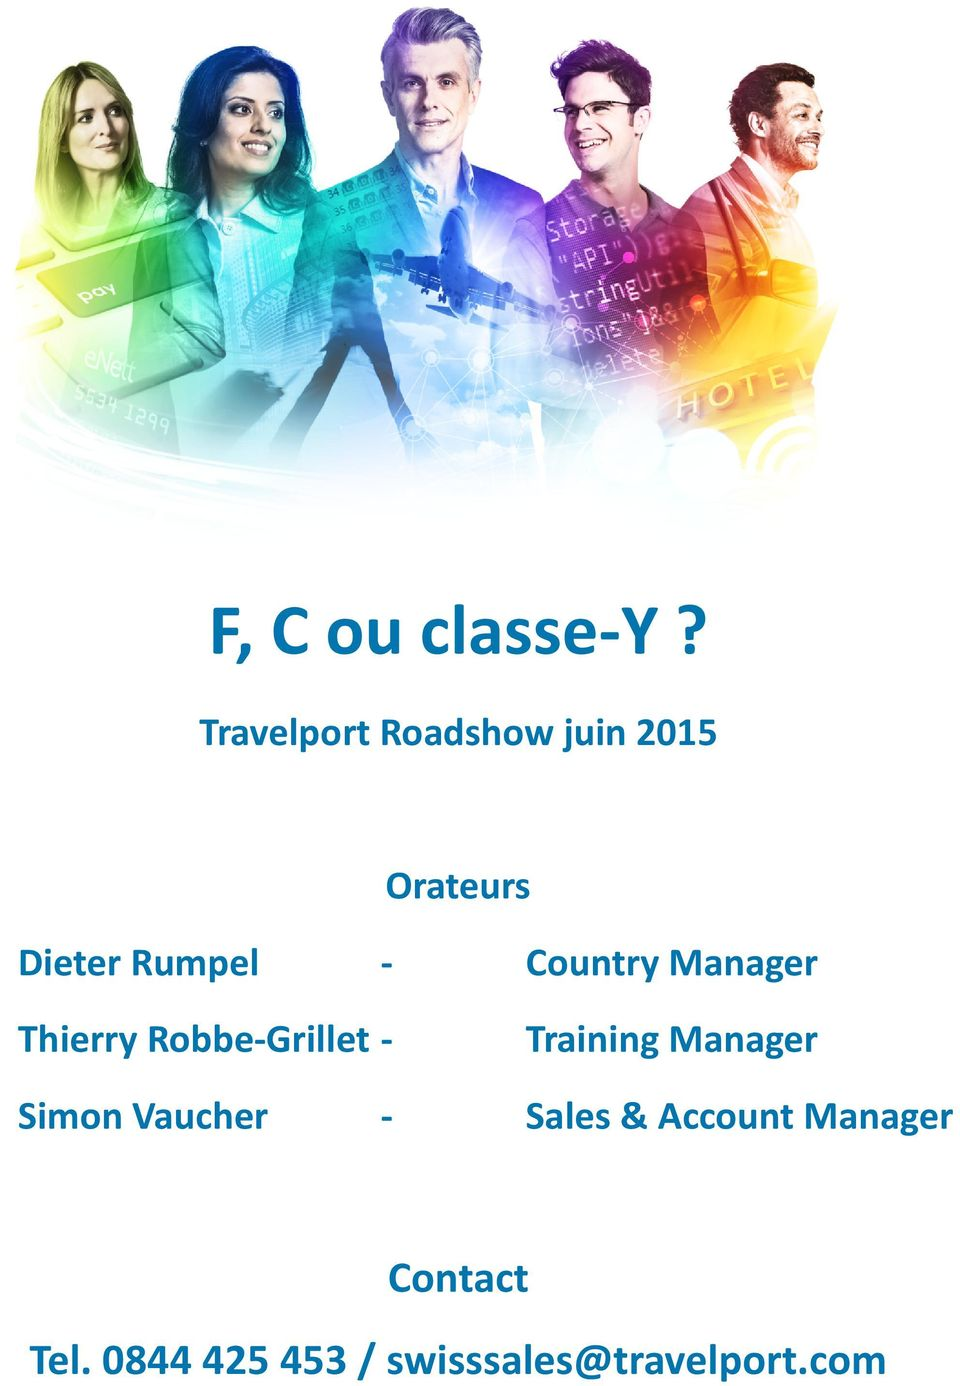 Country Manager Thierry Robbe-Grillet - Training